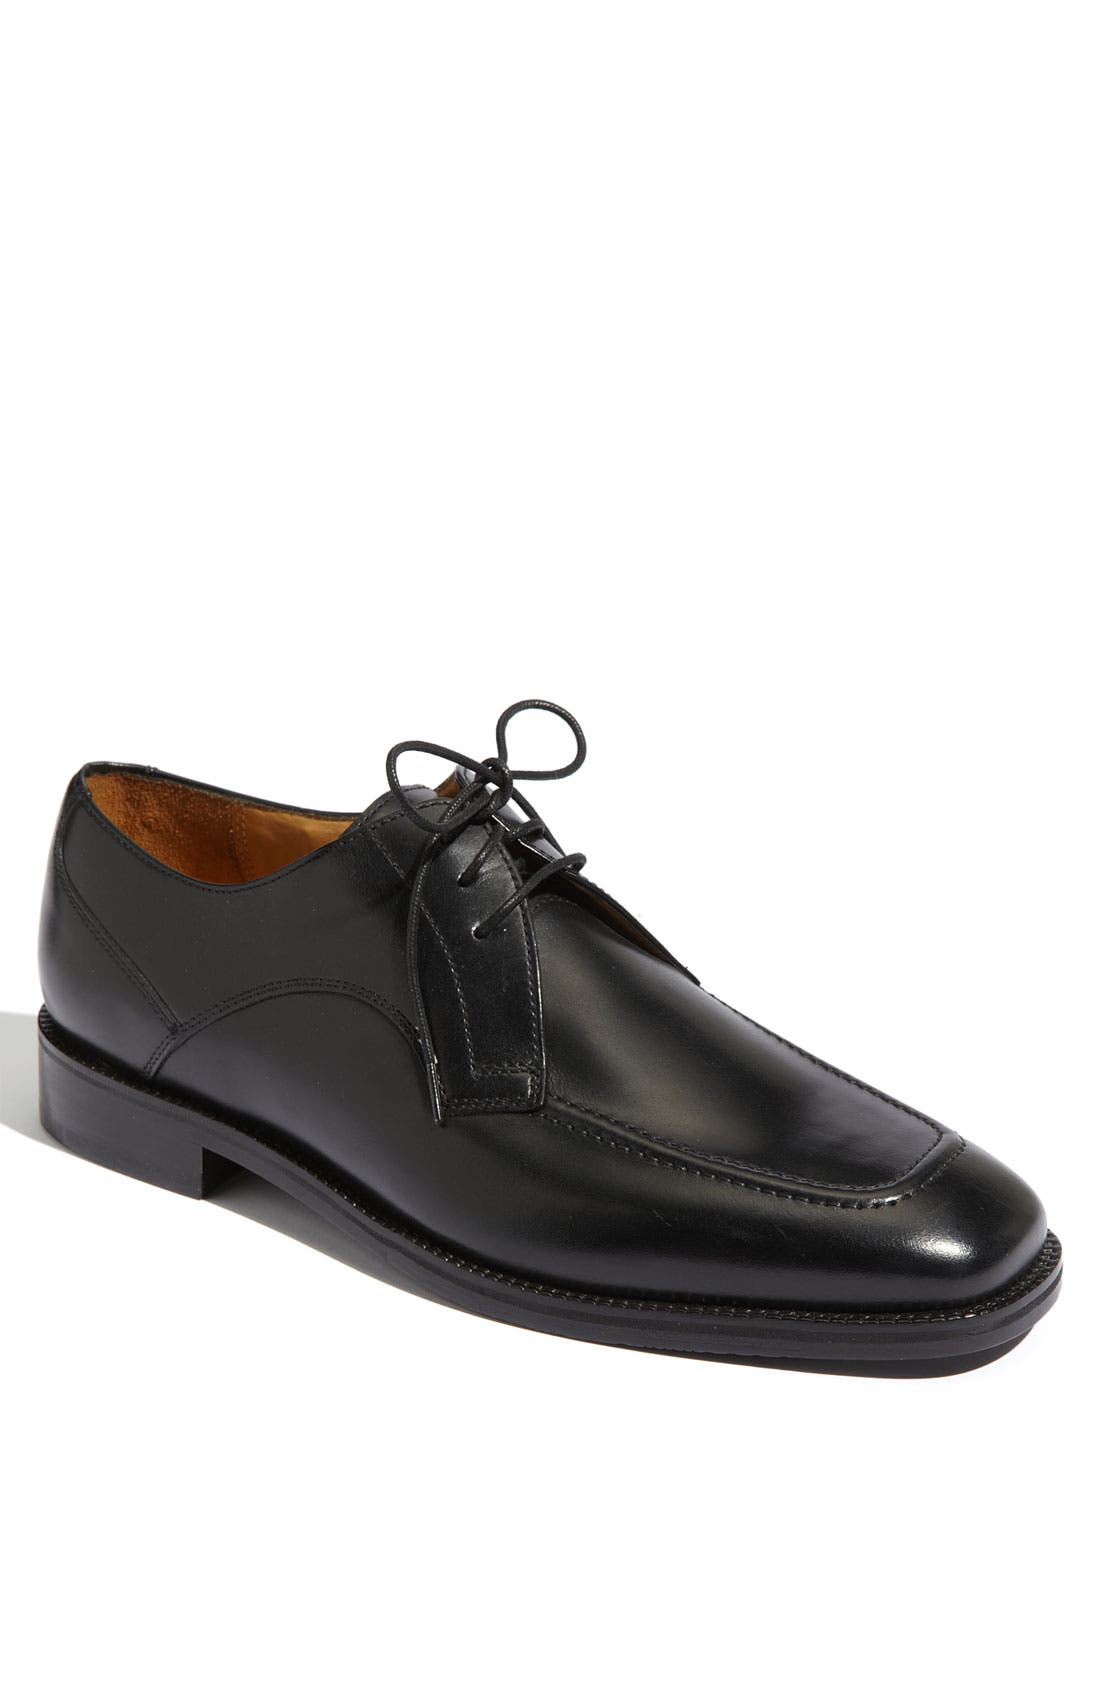 Alternate Image 1 Selected - Cole Haan 'Eaton' Oxford   (Men)